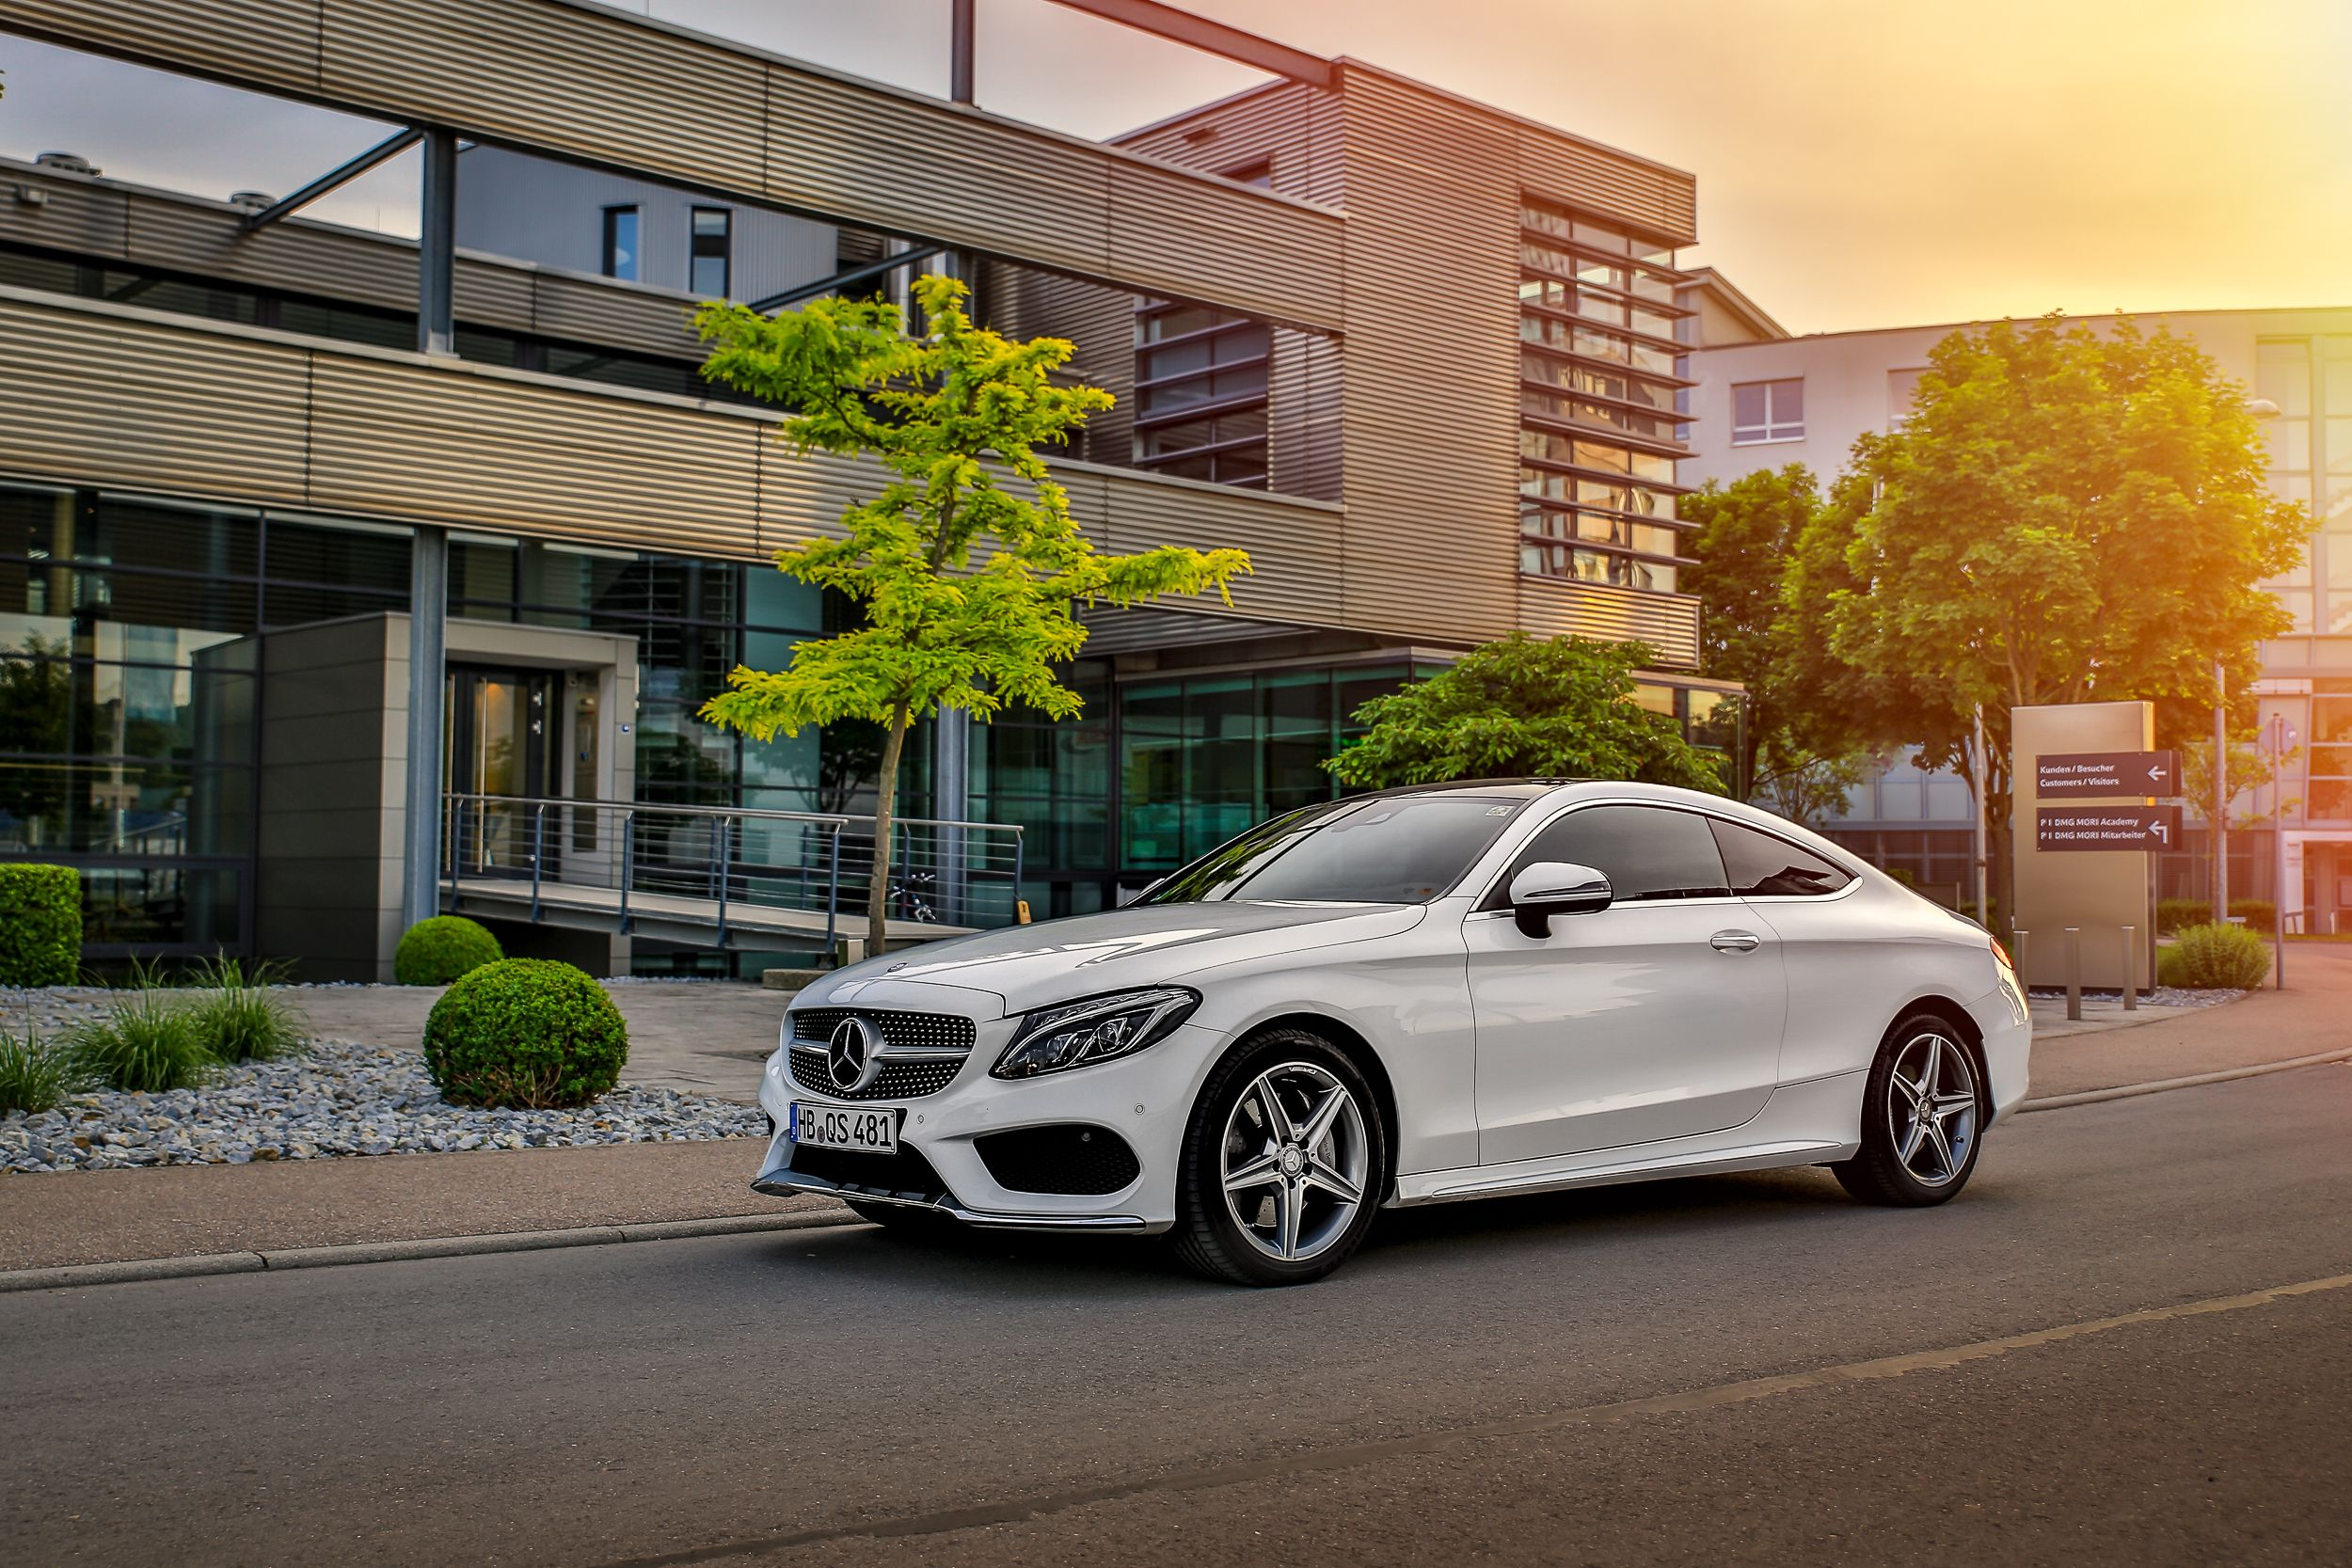 Instantly thrilling The new C Class Coupé